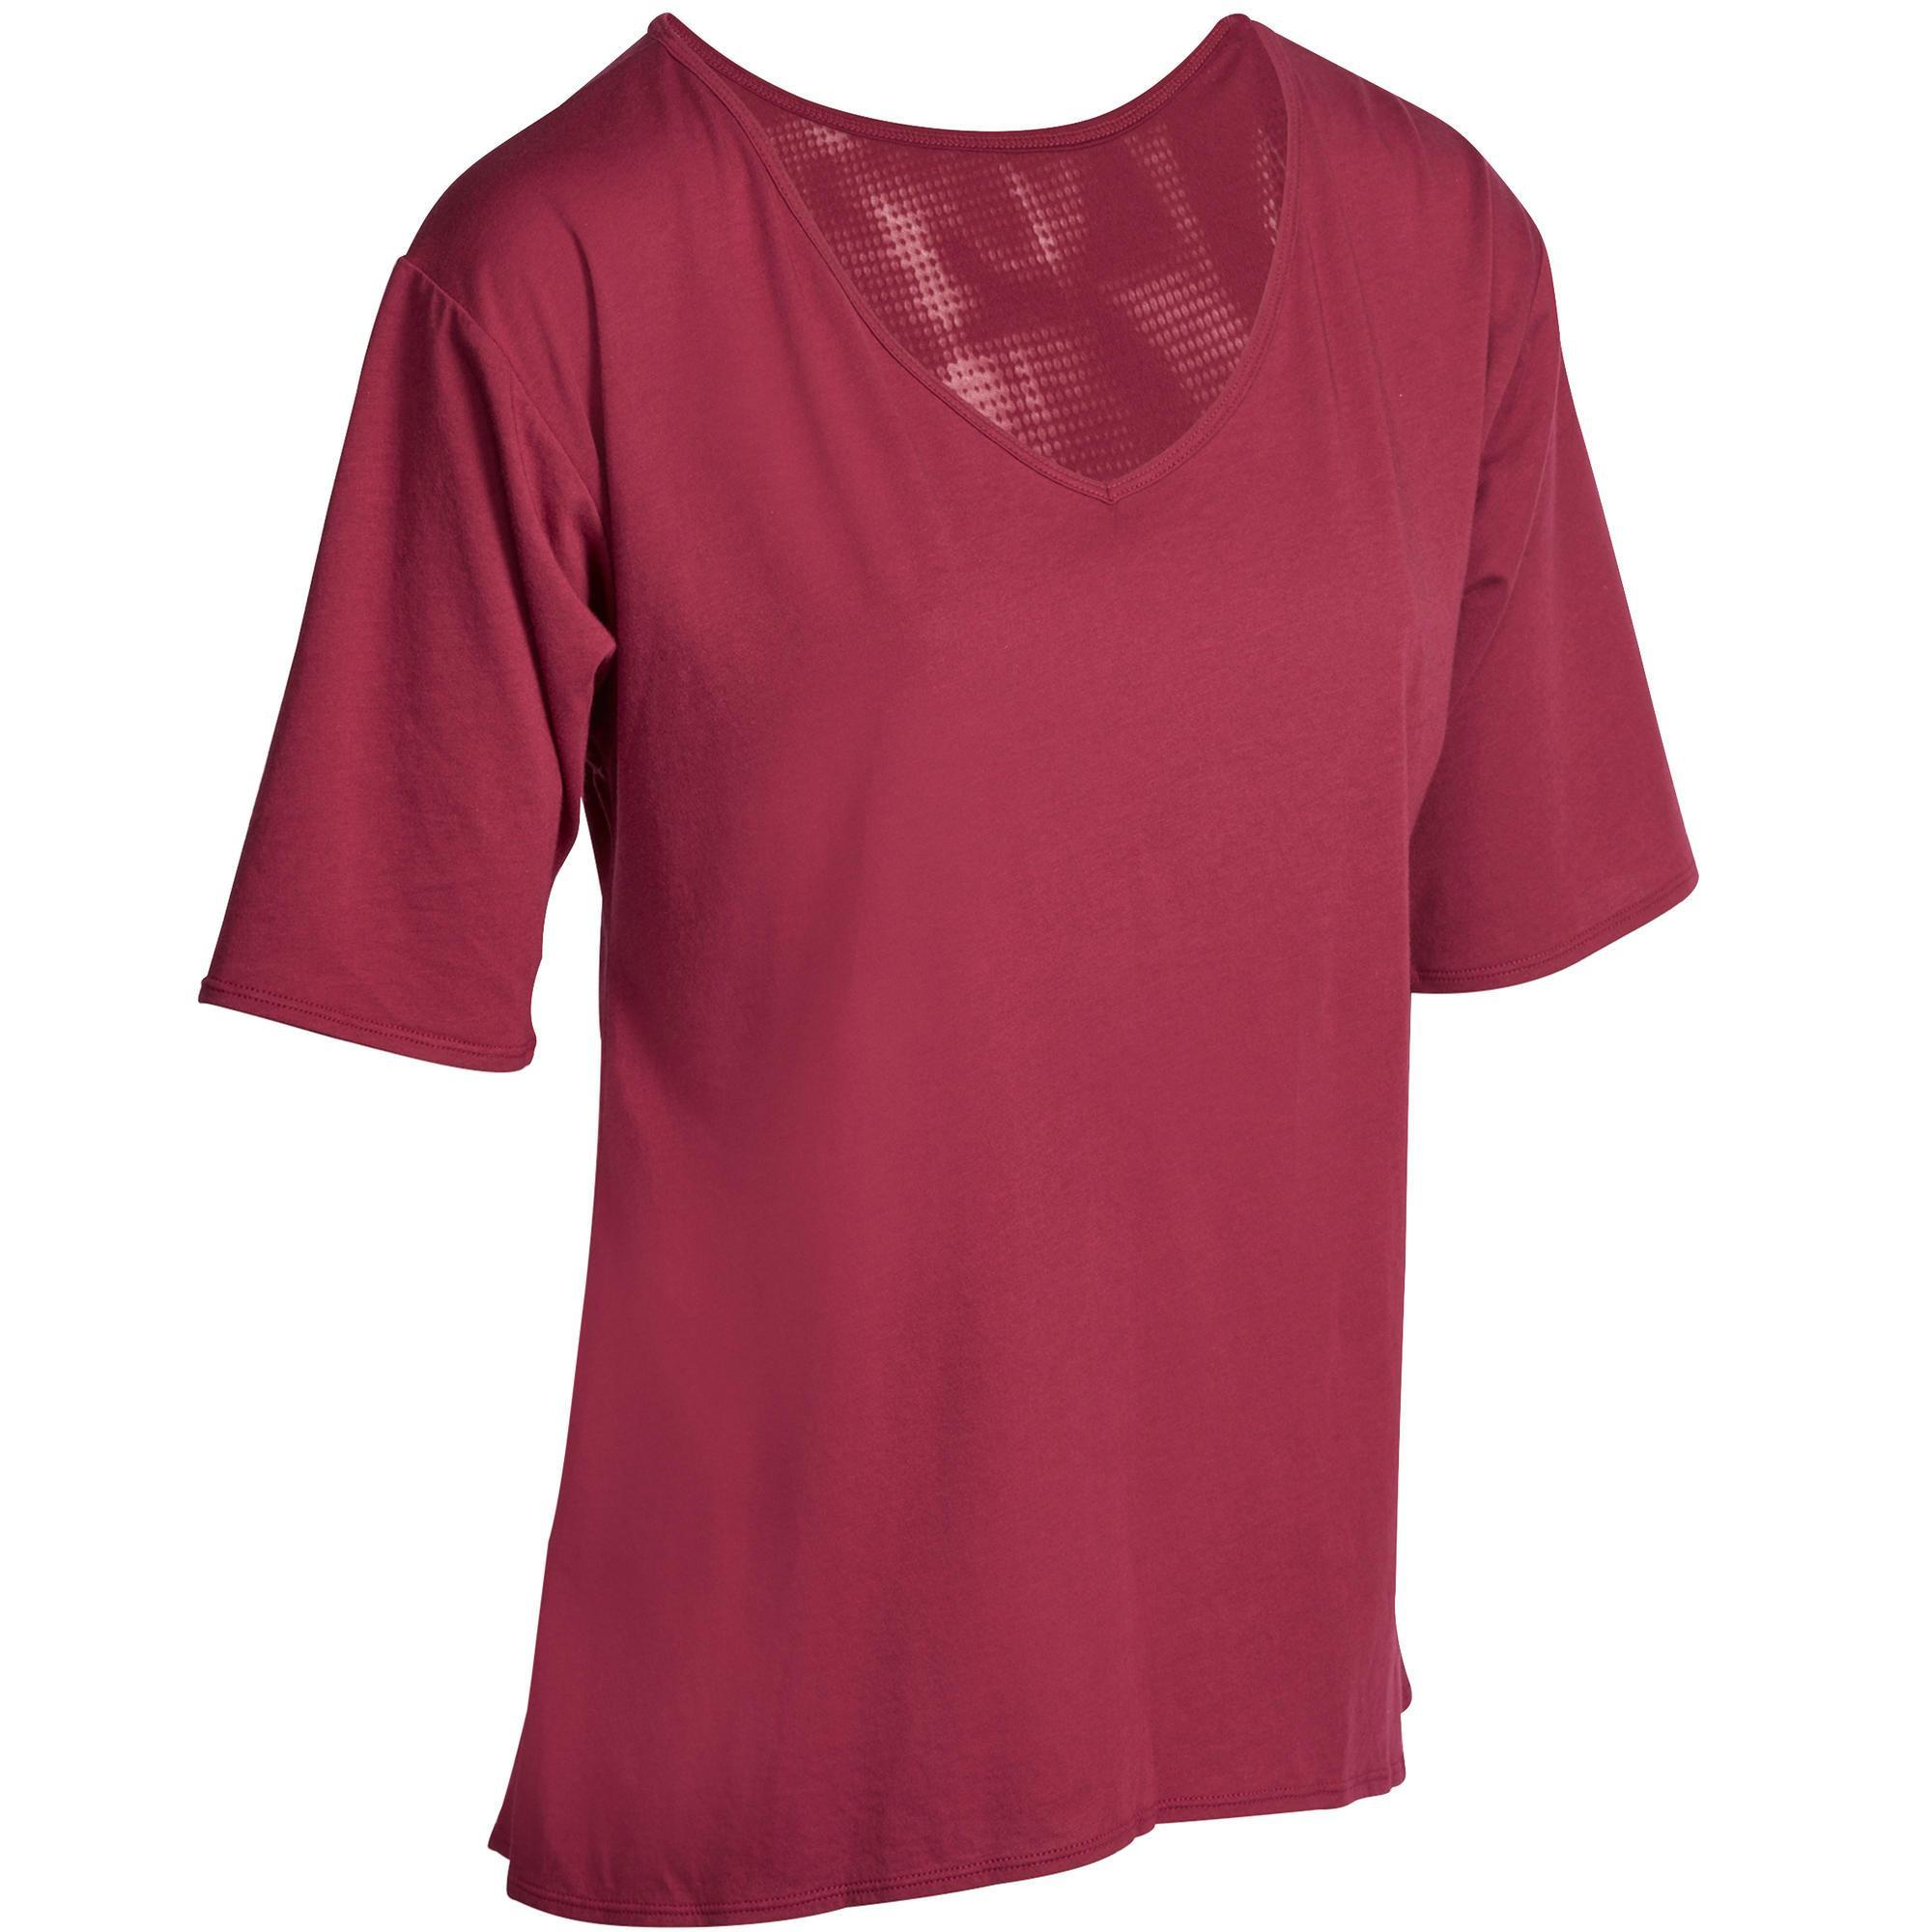 t shirt ample shape fitness femme bordeaux domyos by decathlon. Black Bedroom Furniture Sets. Home Design Ideas